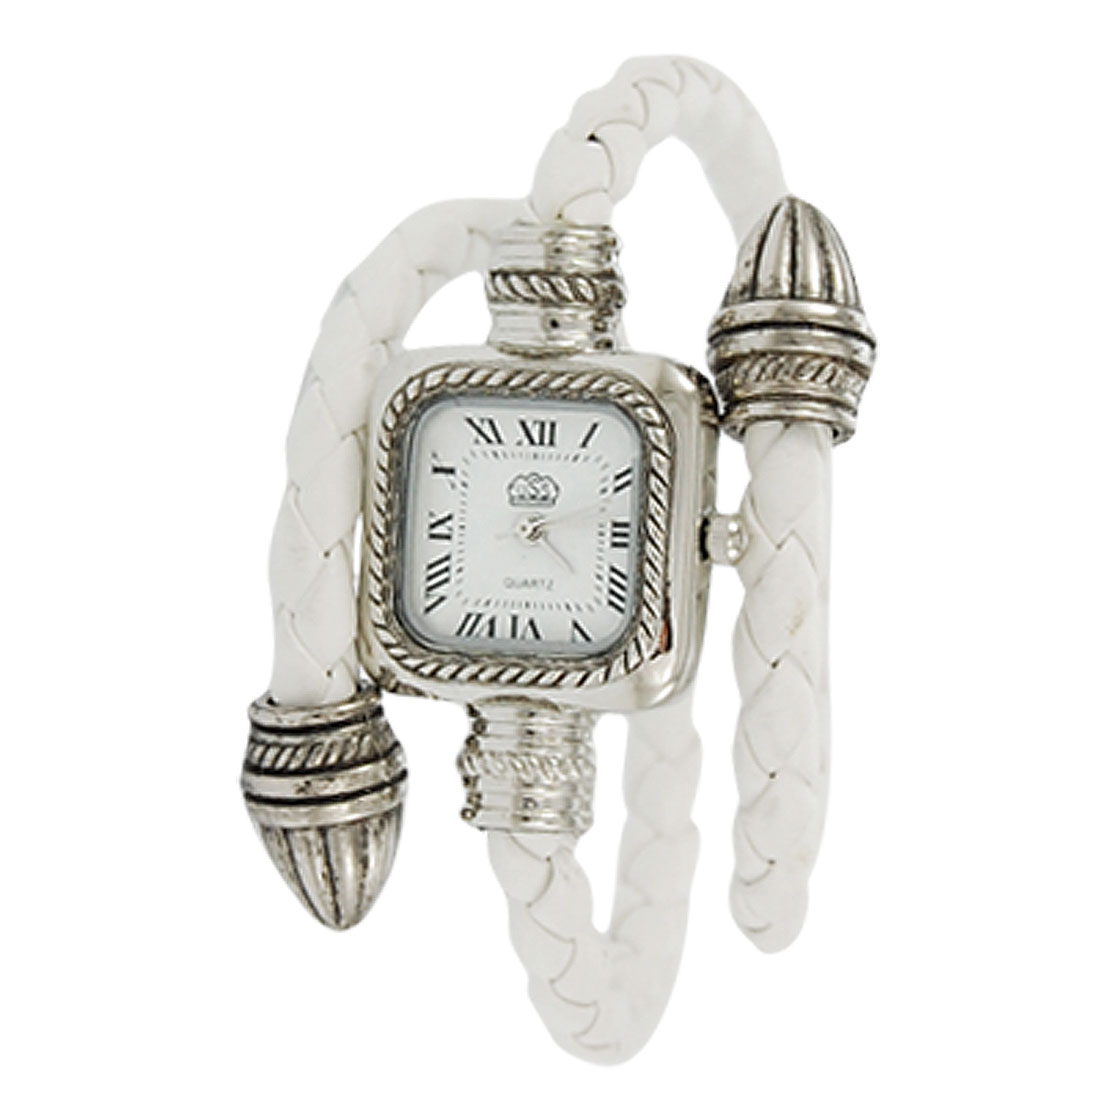 Braided Band Rectangle Dial Quartz Watch White for Lady